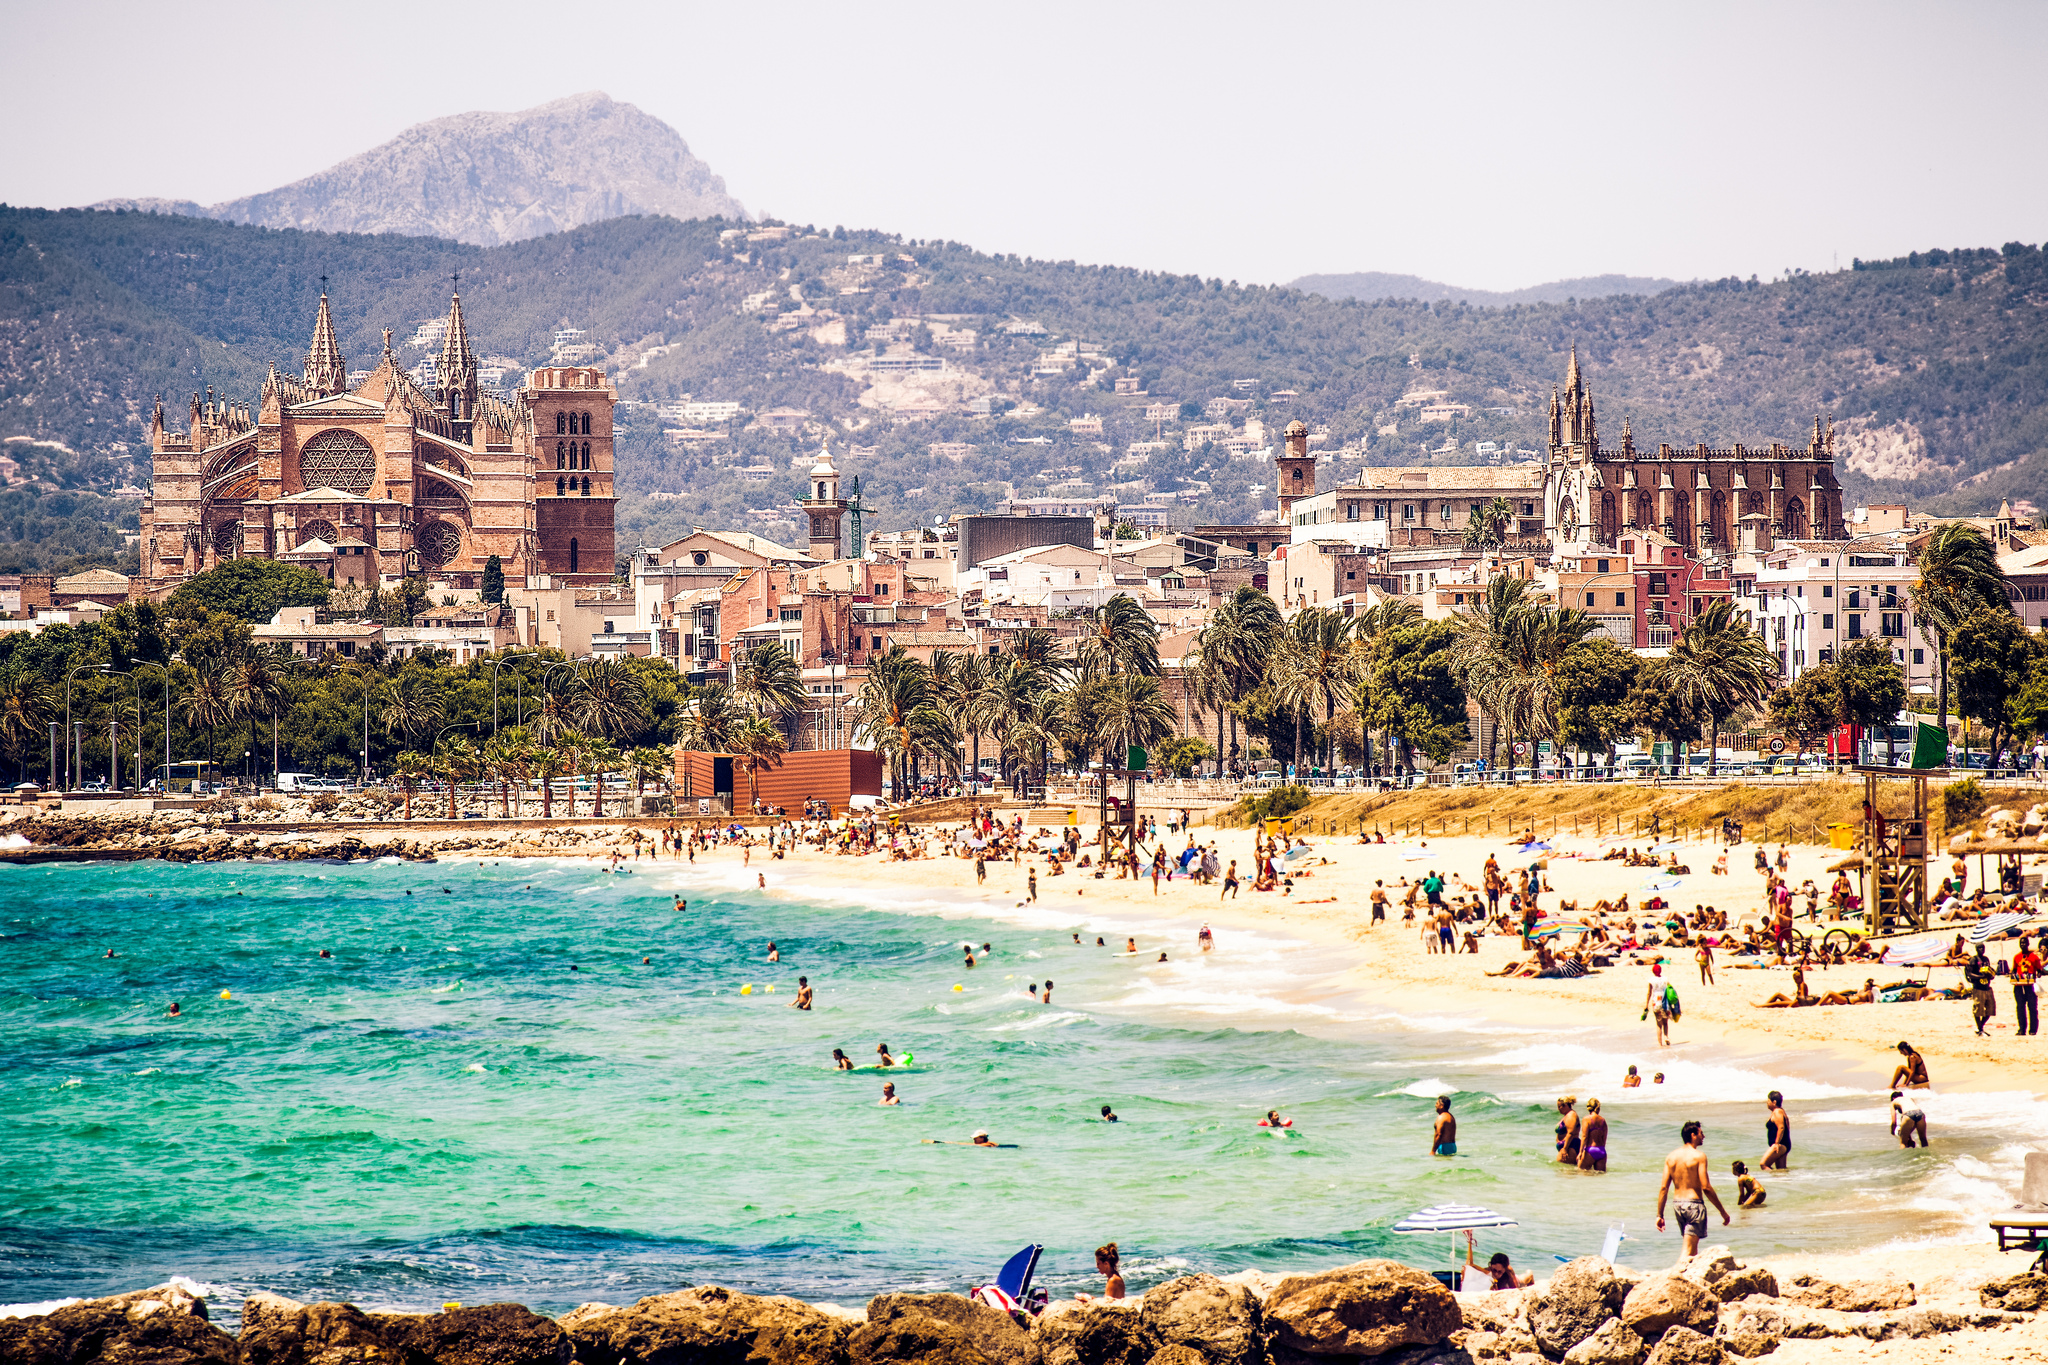 Palma de Mallorca is the largest city on Mallorca